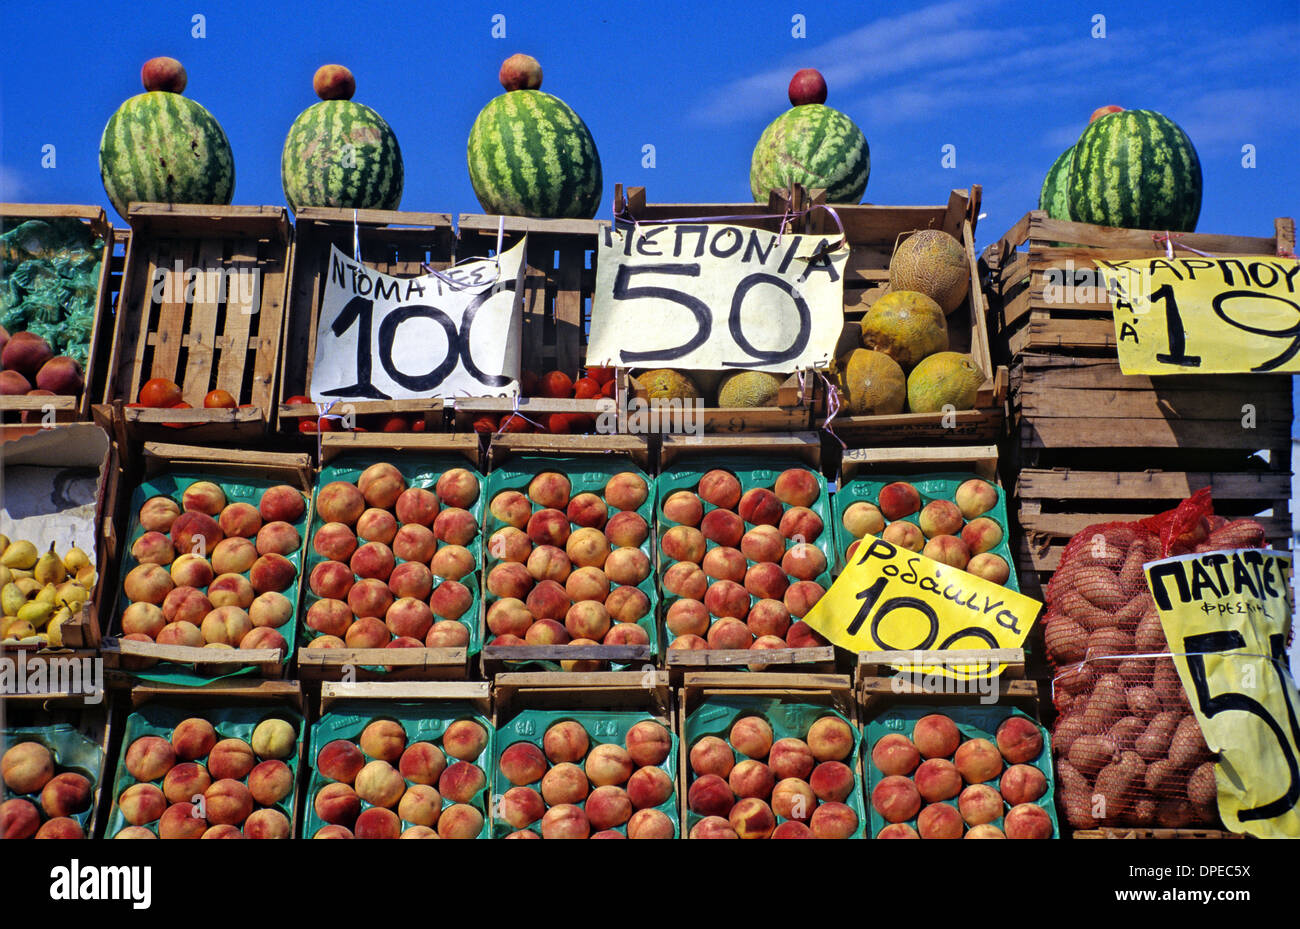 Display of Greek Fruit Peaches & Melons on Market Stall Priced in Drachma Greece - Stock Image